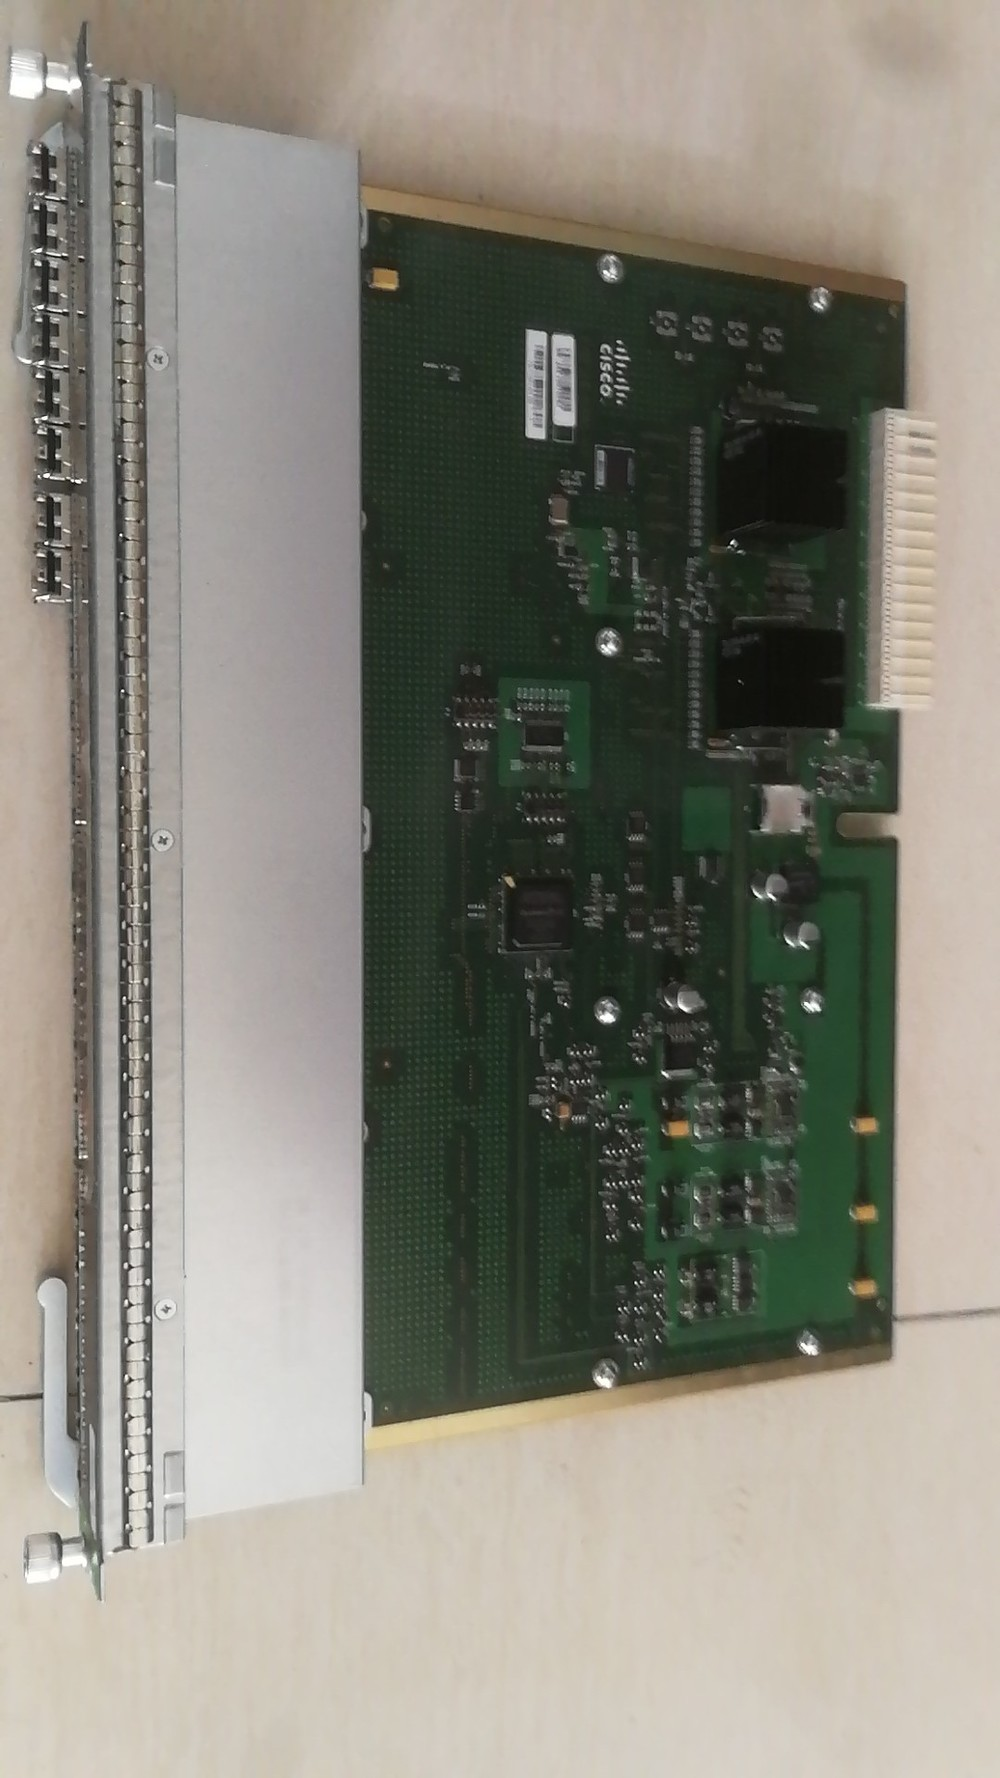 Original Card PVMD for UA5000